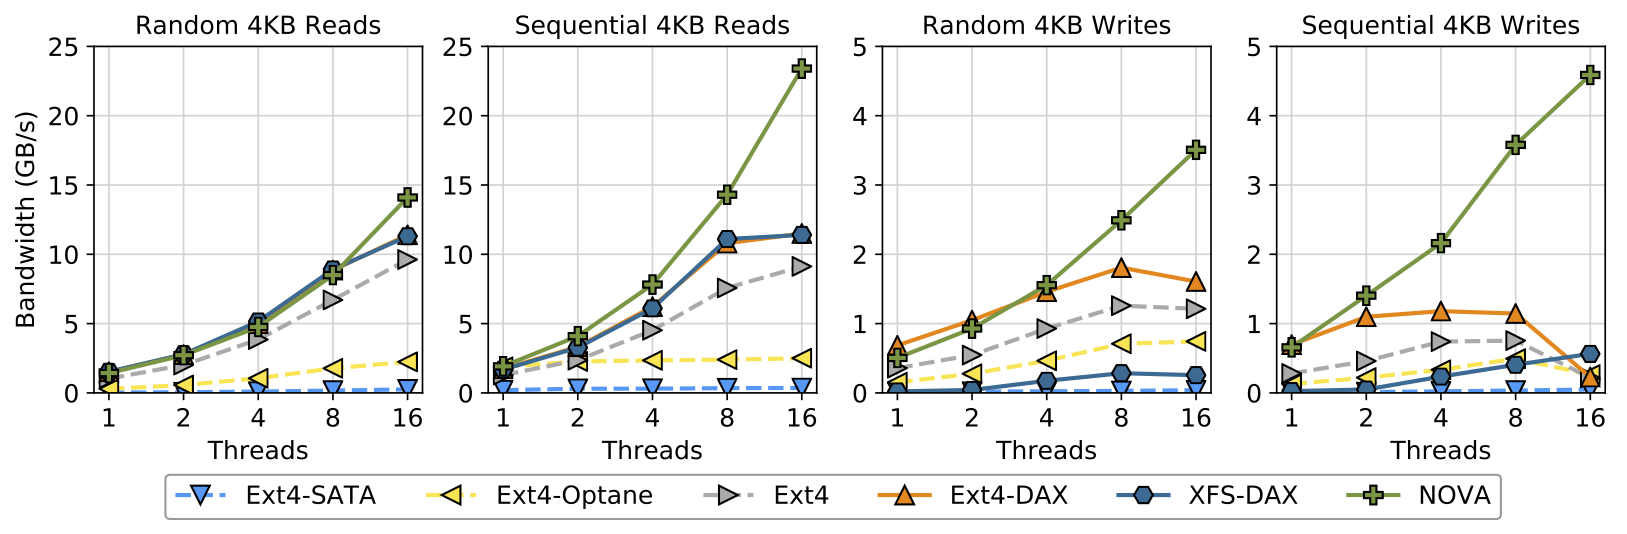 ACM SIGARCH BLOG: Early Measurements of Intel's 3DXPoint